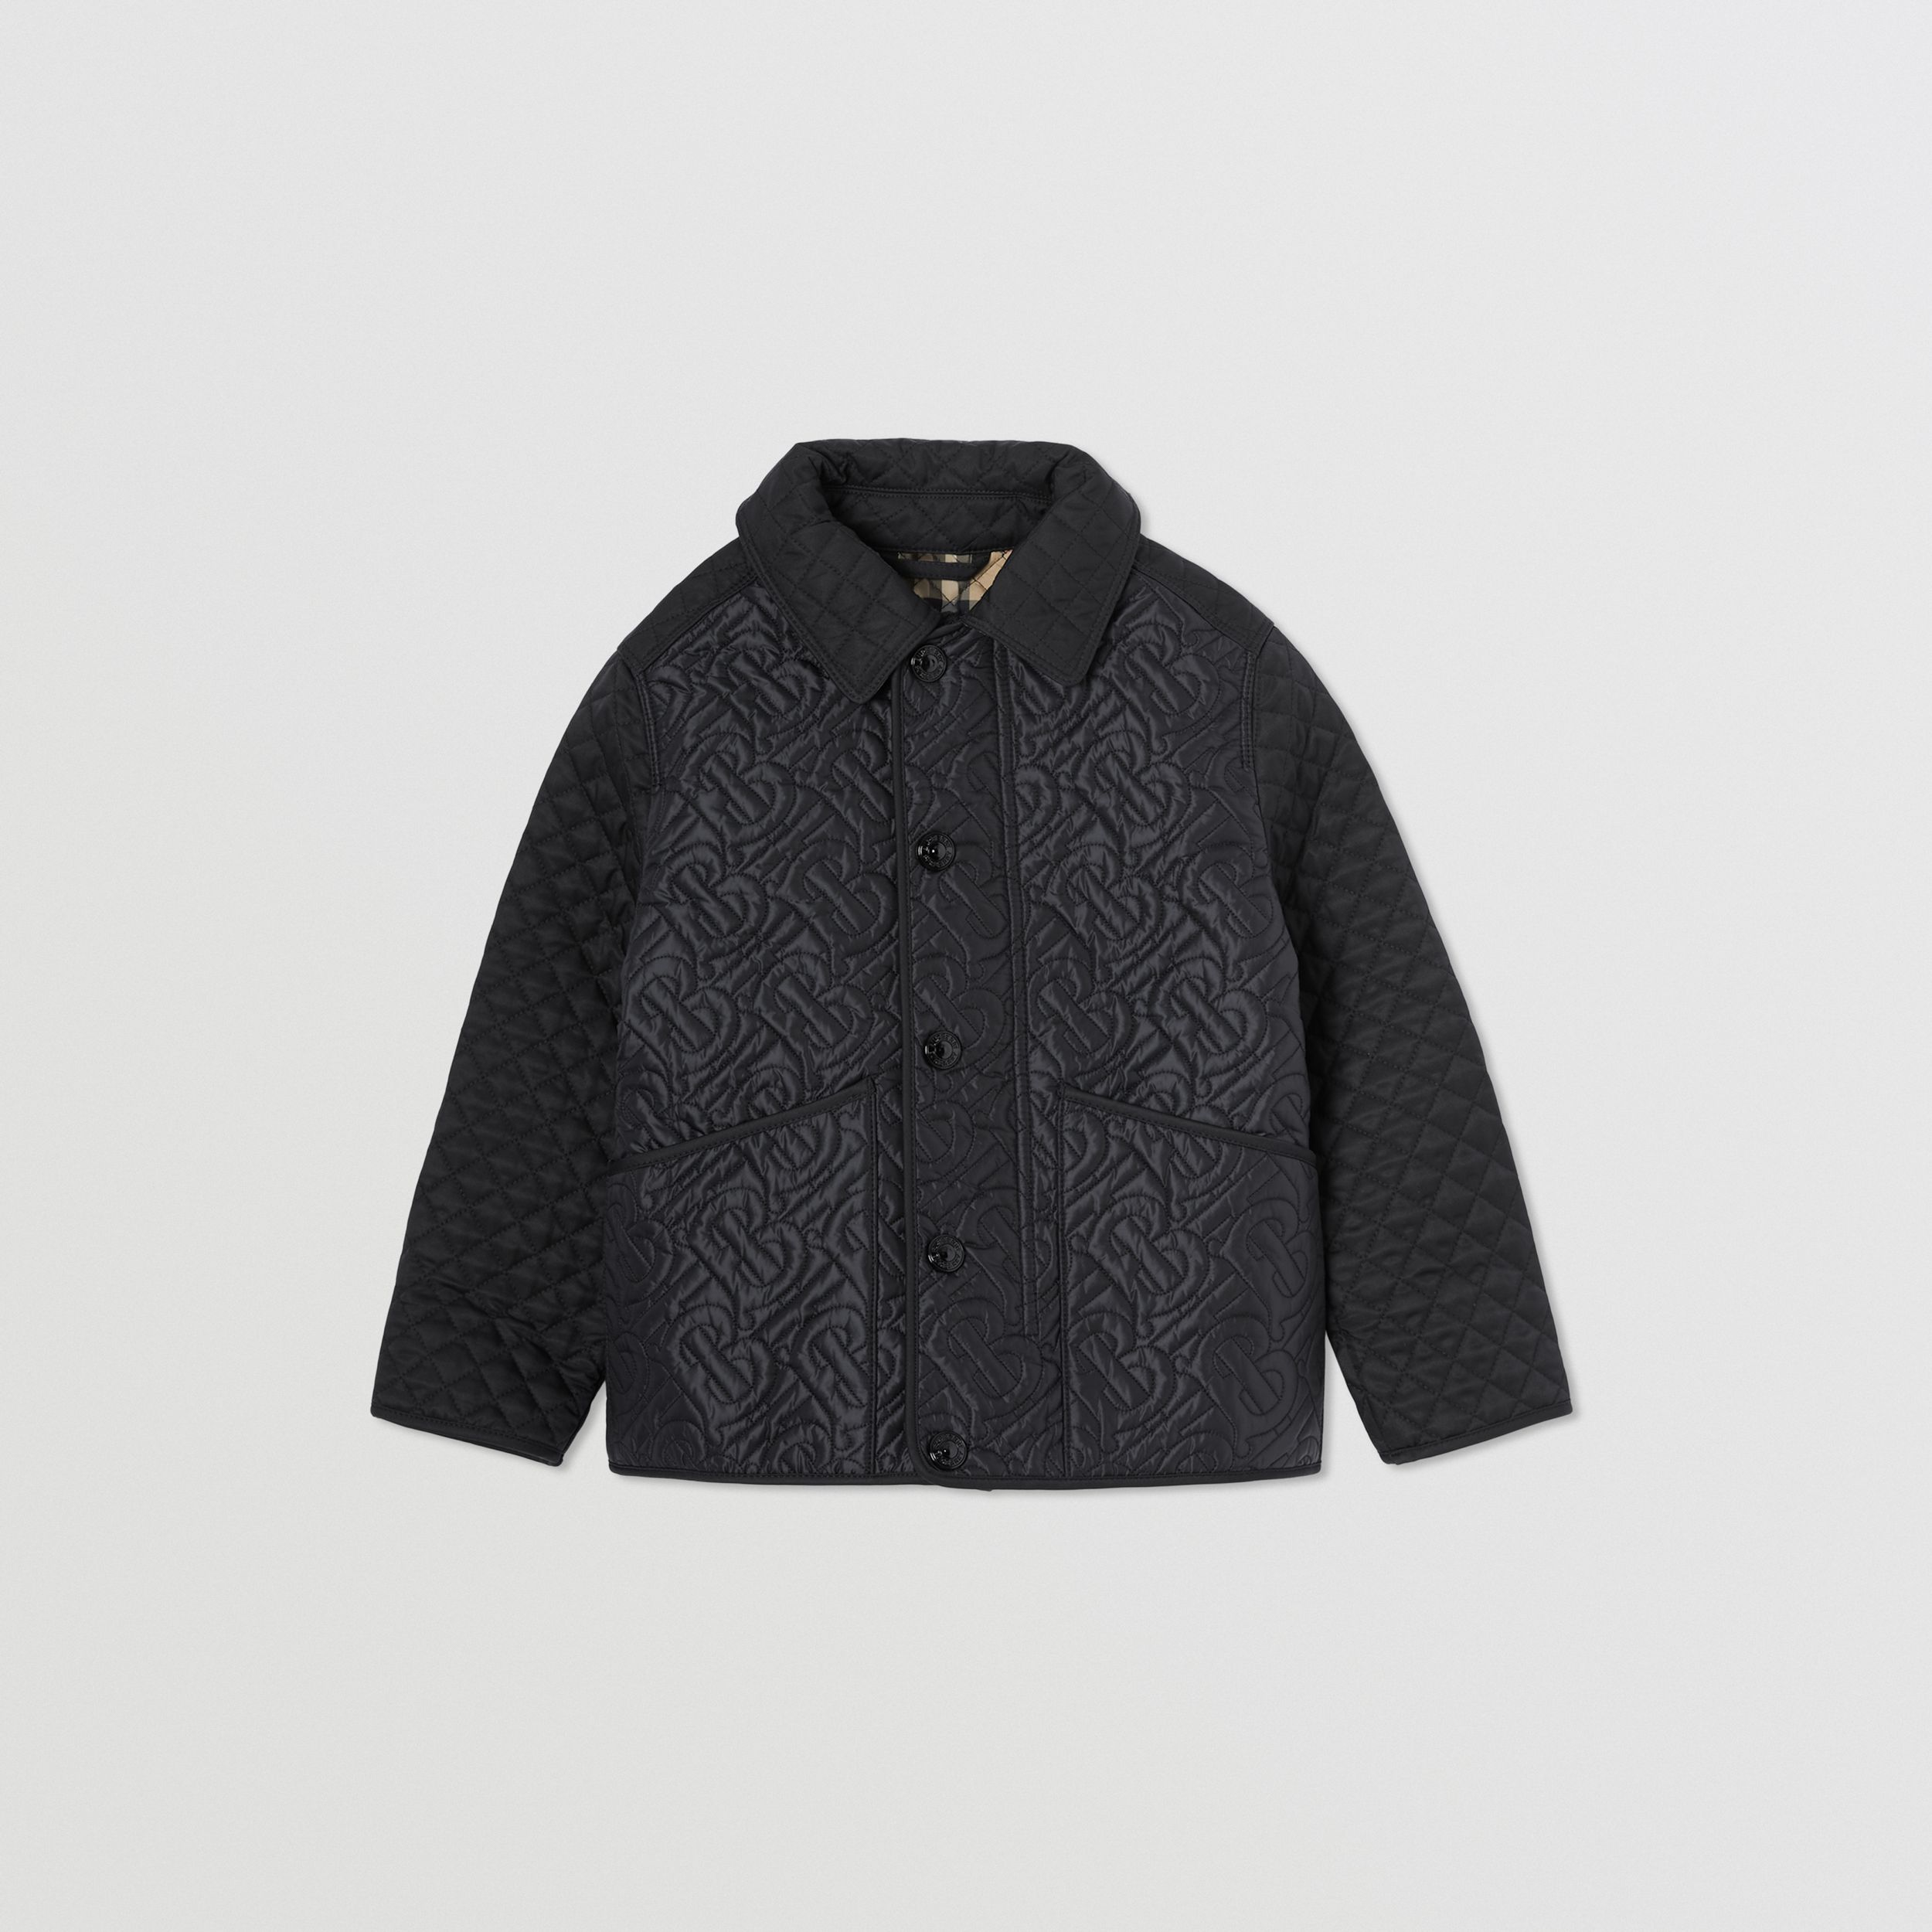 Monogram Quilted Panel Recycled Polyester Jacket in Black | Burberry - 1